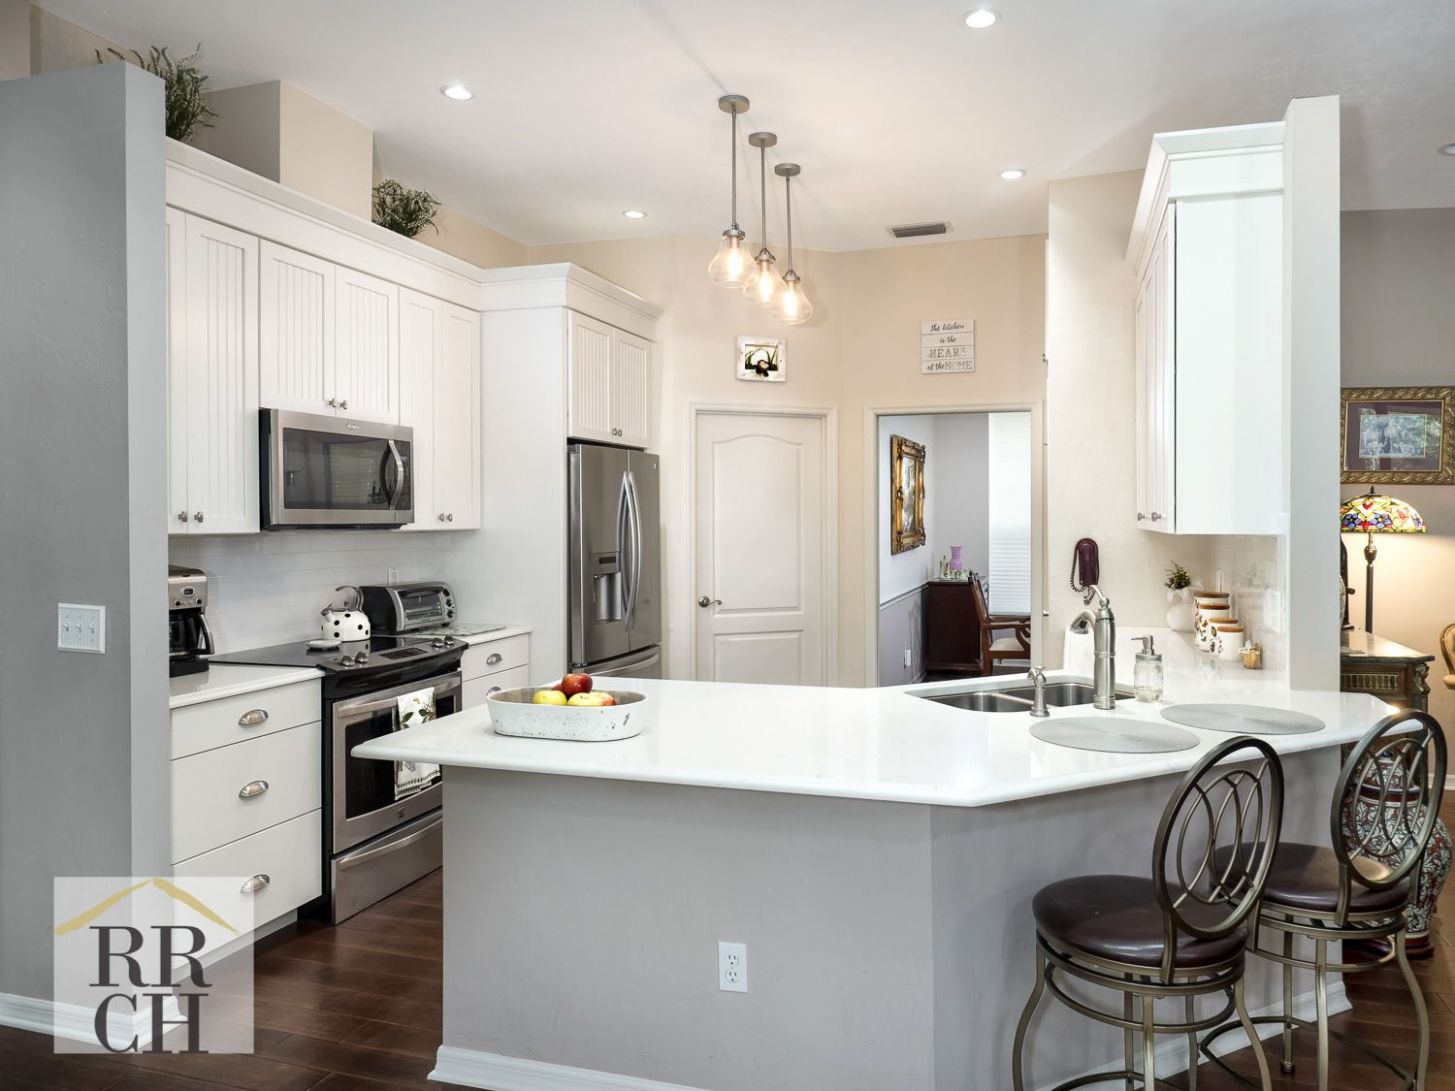 Angled Peninsula To Open Up View | Curved kitchen, Kitchen remodel ..